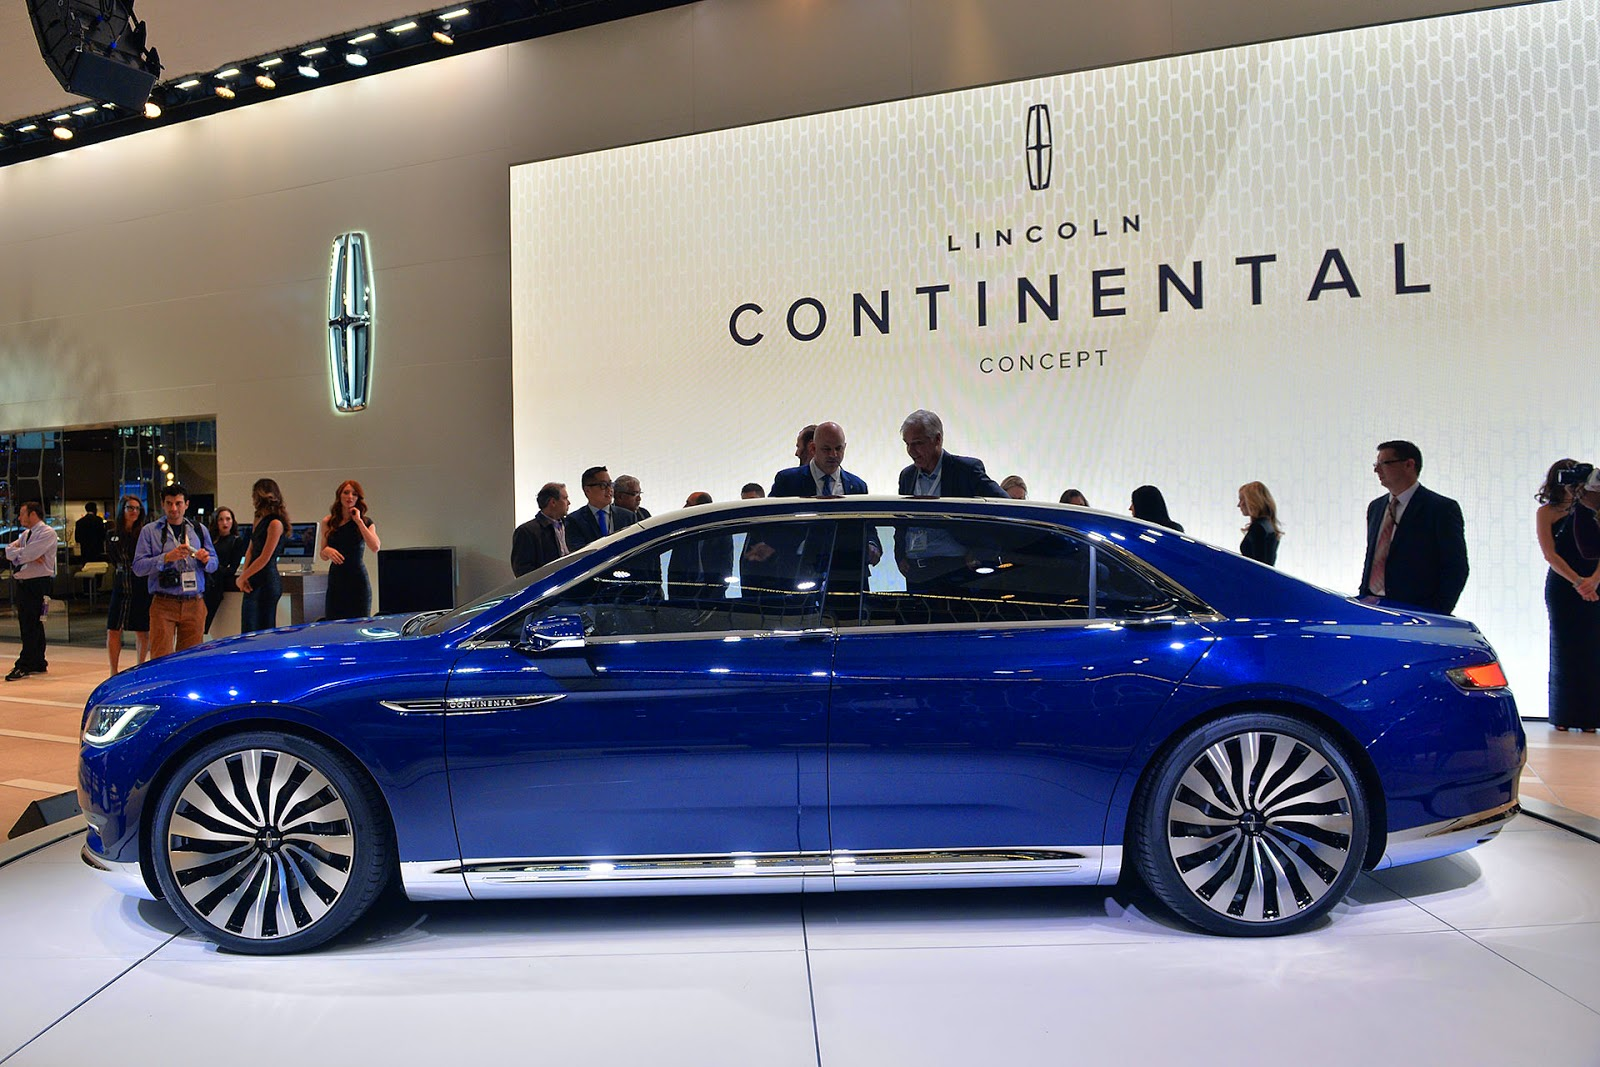 Lincoln%2BContinental%2BConcept%2BNew%2B